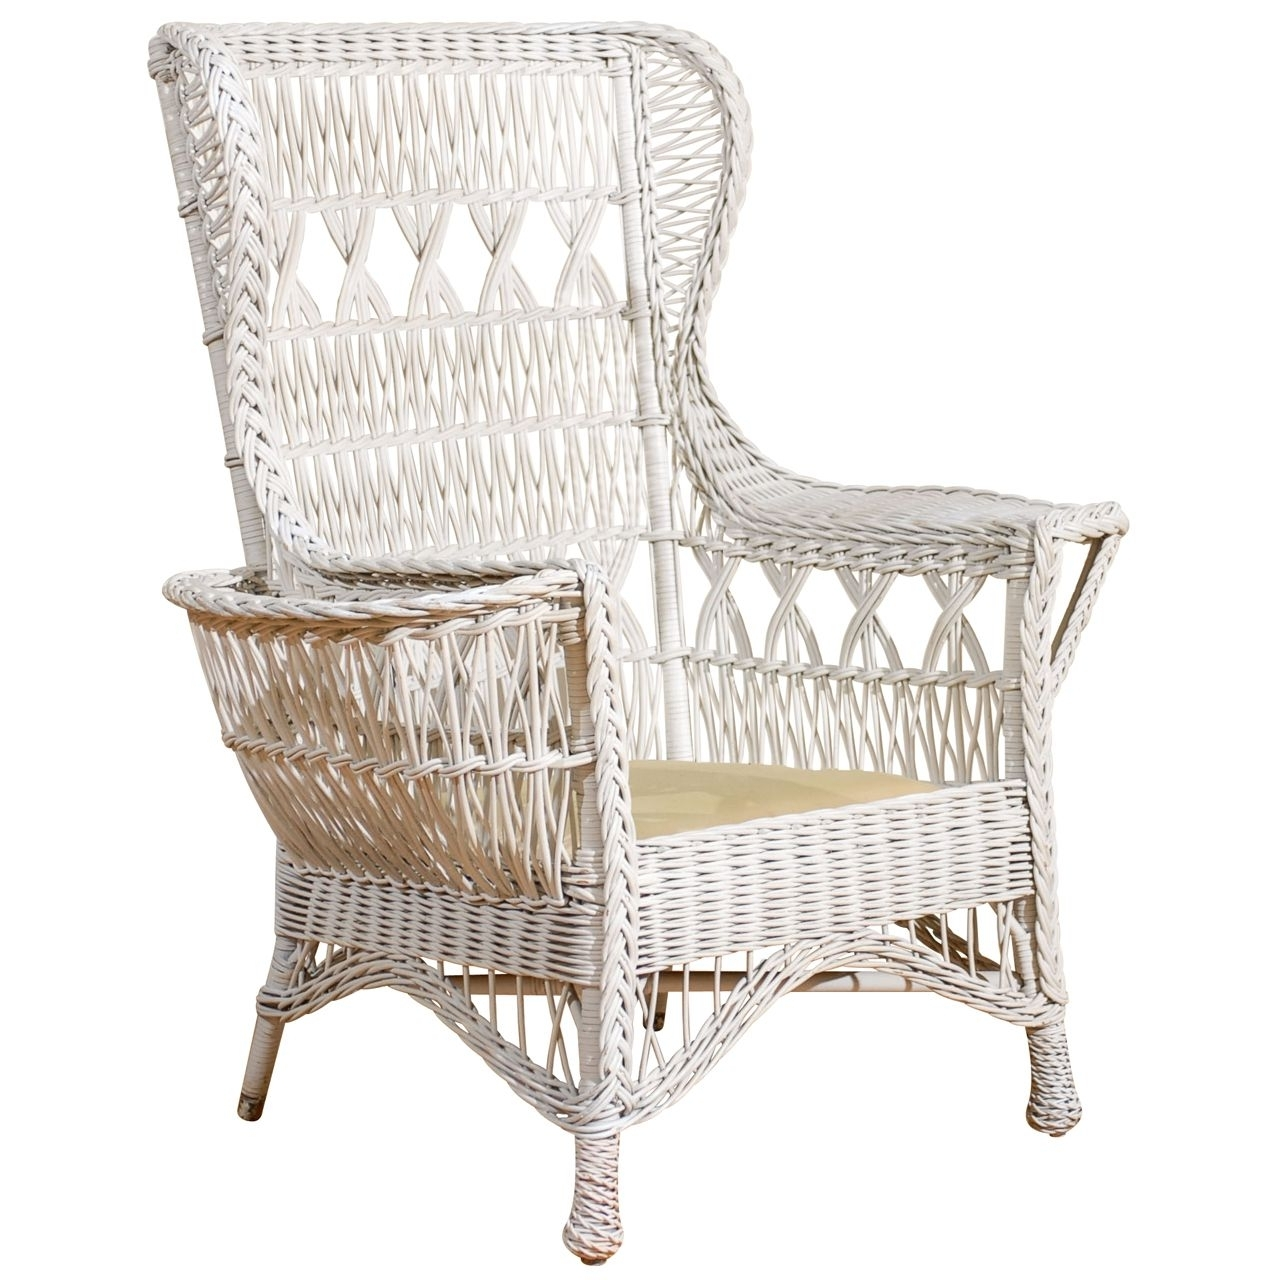 Wicker With Regard To 2017 Wicker Rocking Chair With Magazine Holder (View 15 of 15)